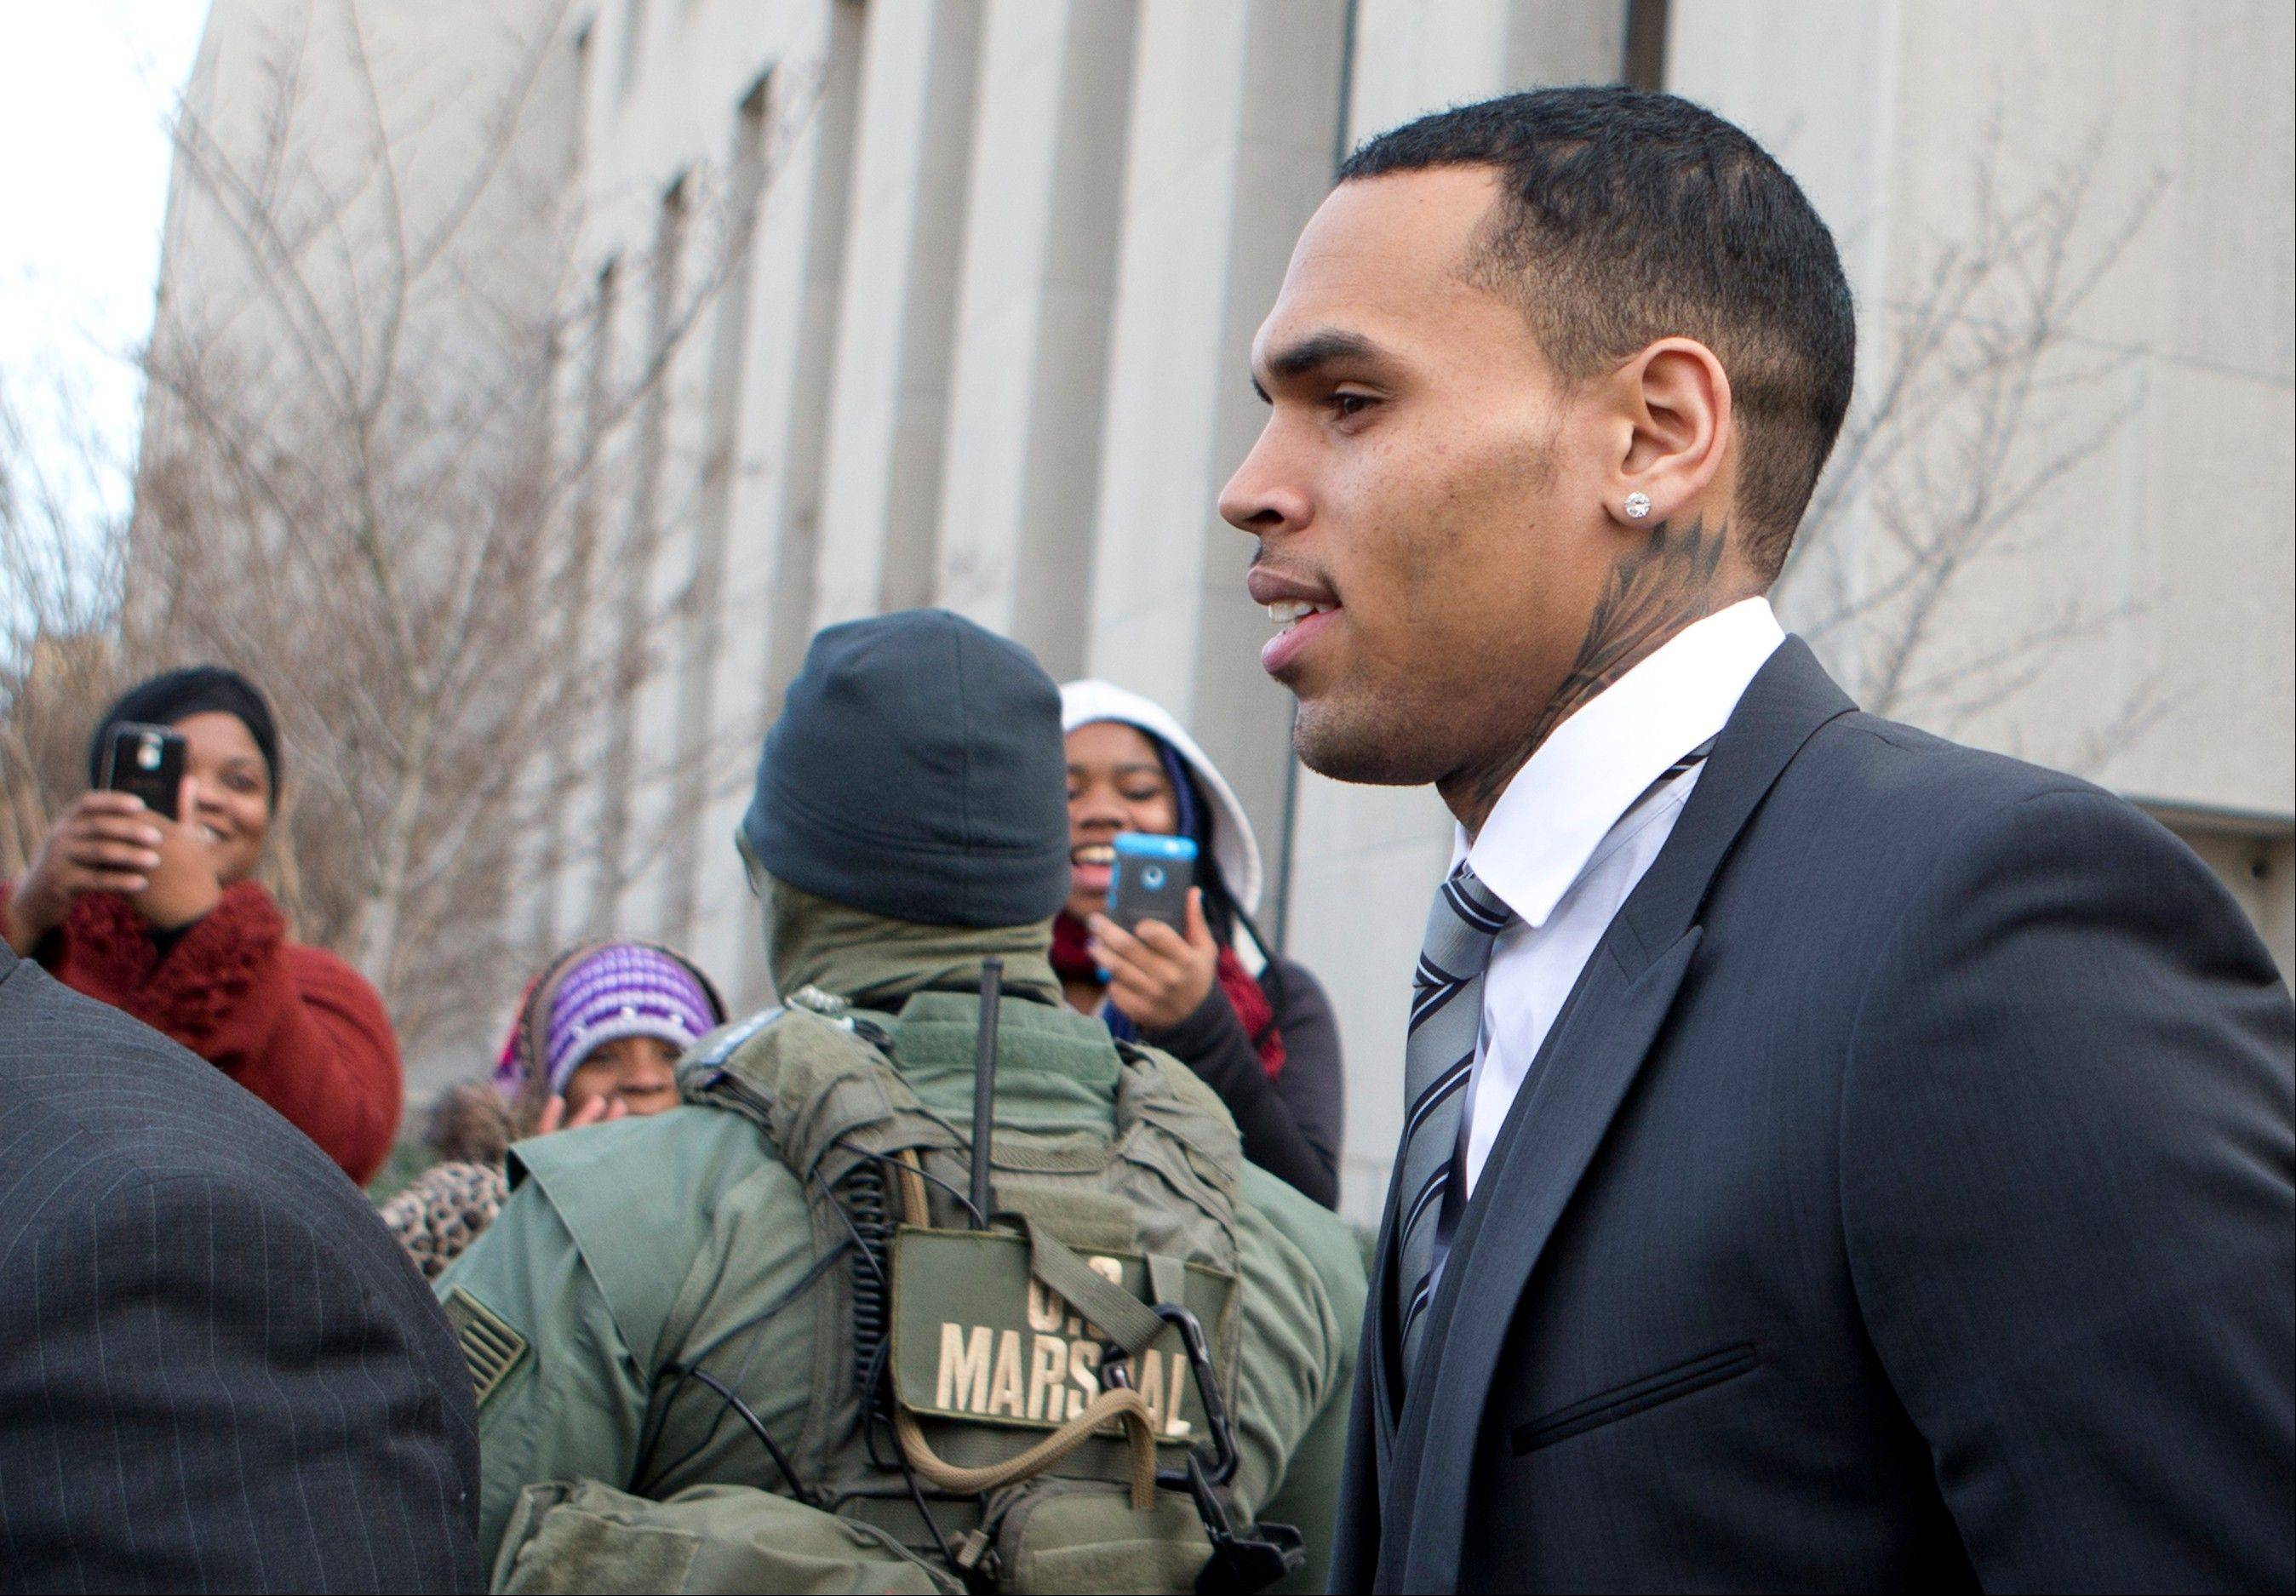 Singer Chris Brown leaves the District of Columbia Superior Court in Washington Wednesday. Lawyers for Brown say the singer has rejected a plea deal in a case in which he's accused of hitting a man outside a Washington hotel.